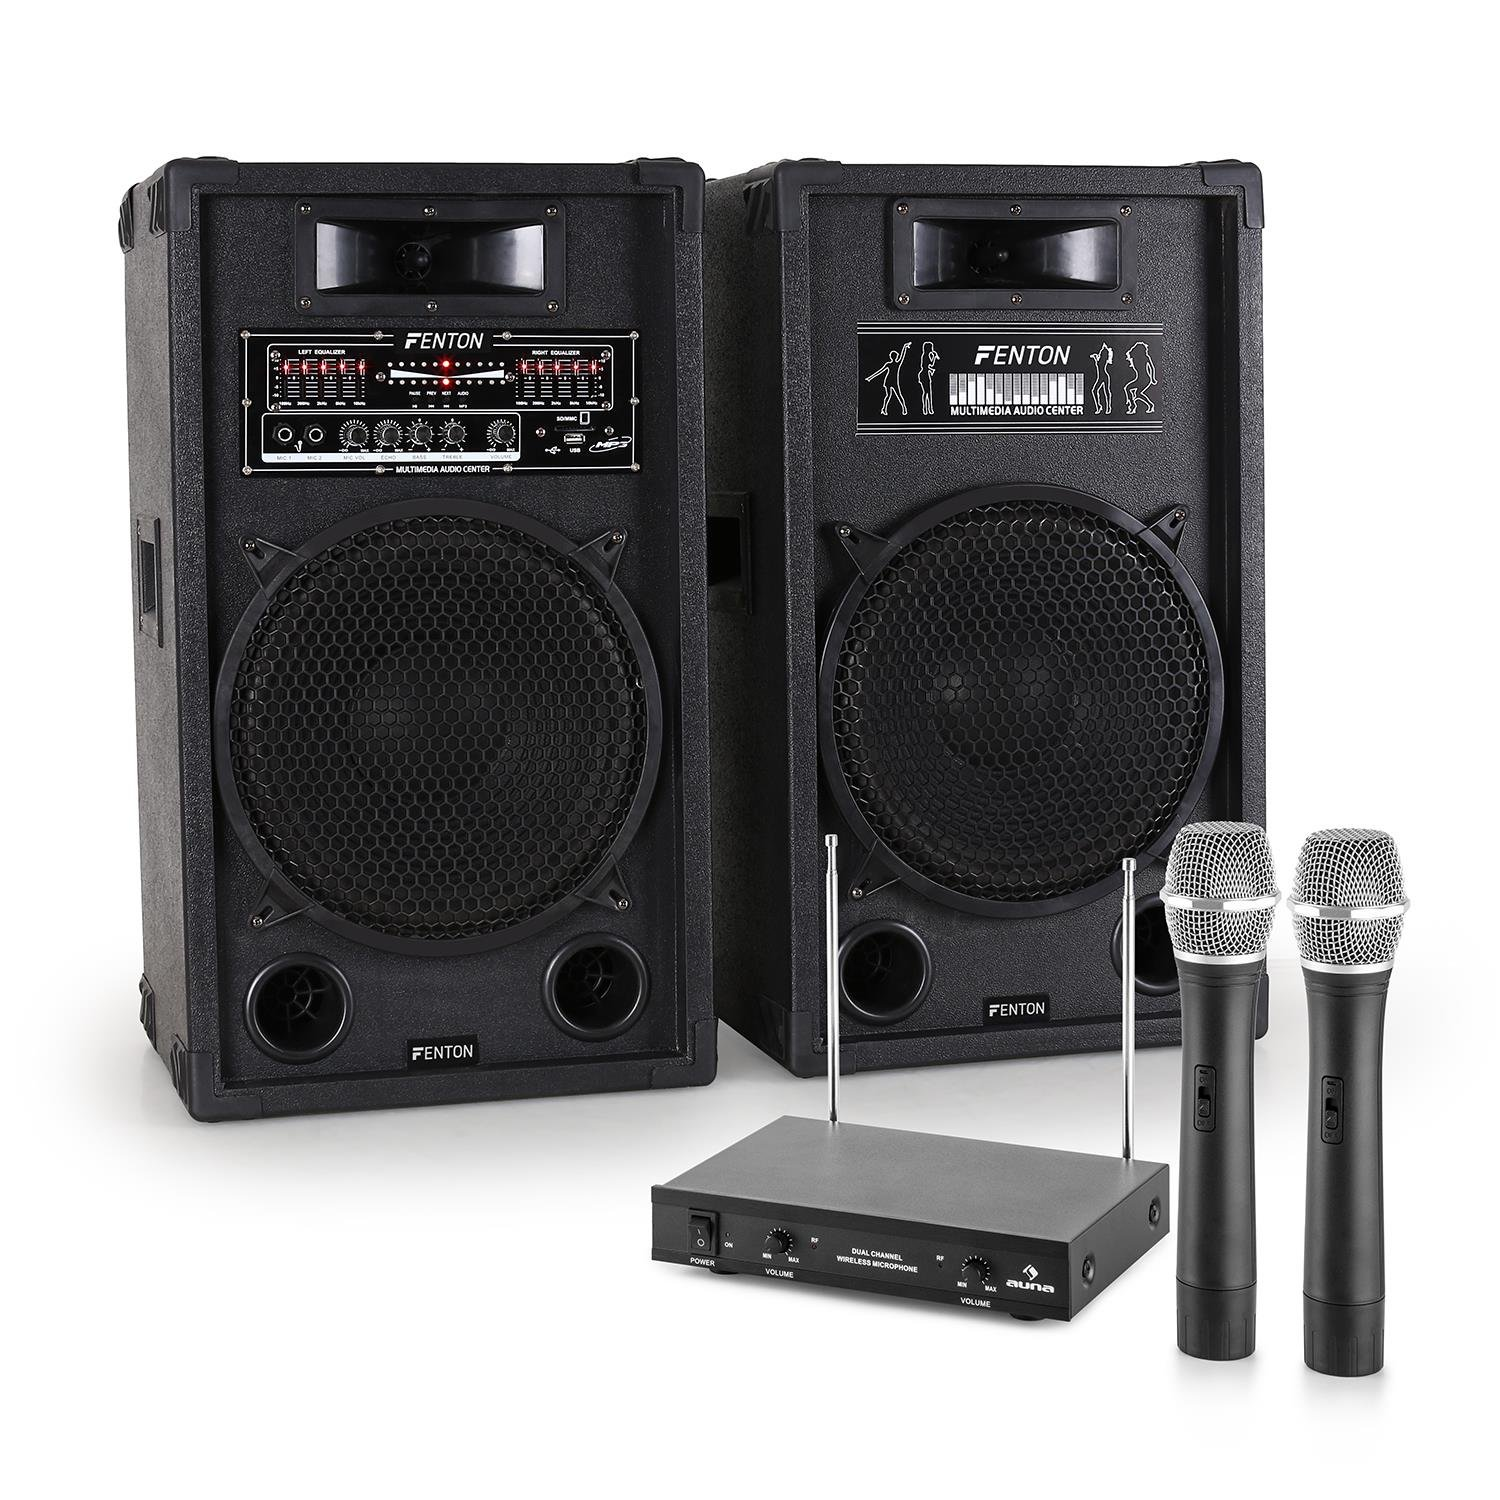 Kit Karaoke STAR-12 Set impianto casse attiva/passiva (1200 Watt max, 2 microfoni wireless, ricevitore, ingressi USB SD) E-star